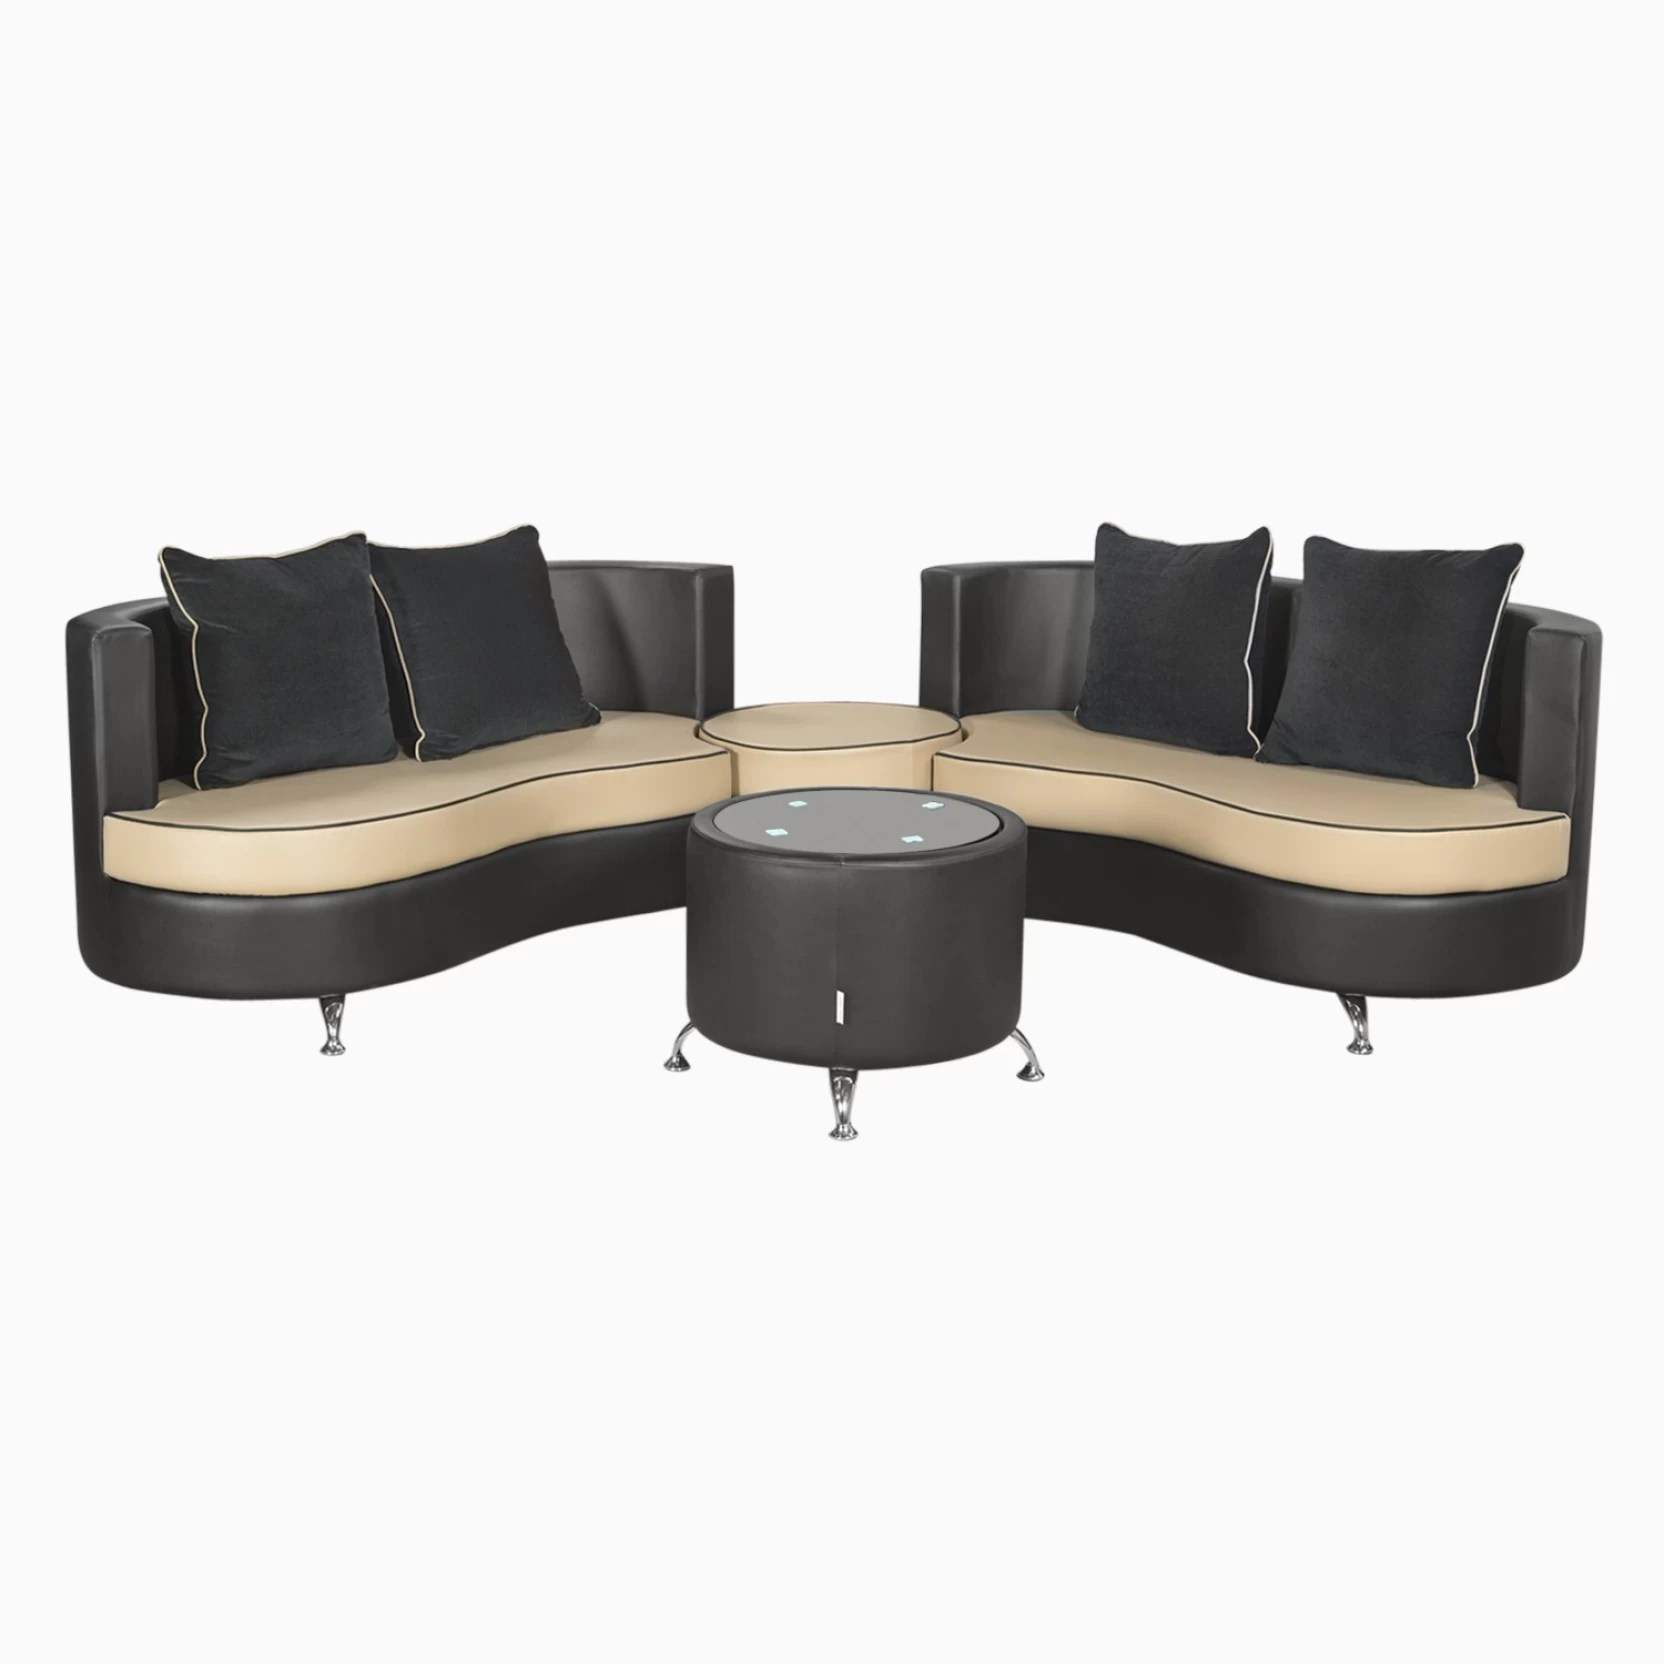 R K Sofa Set Rajkot Gujarat Godrej Interio Athena Plus In S1n Lth Blackb Leatherette 2